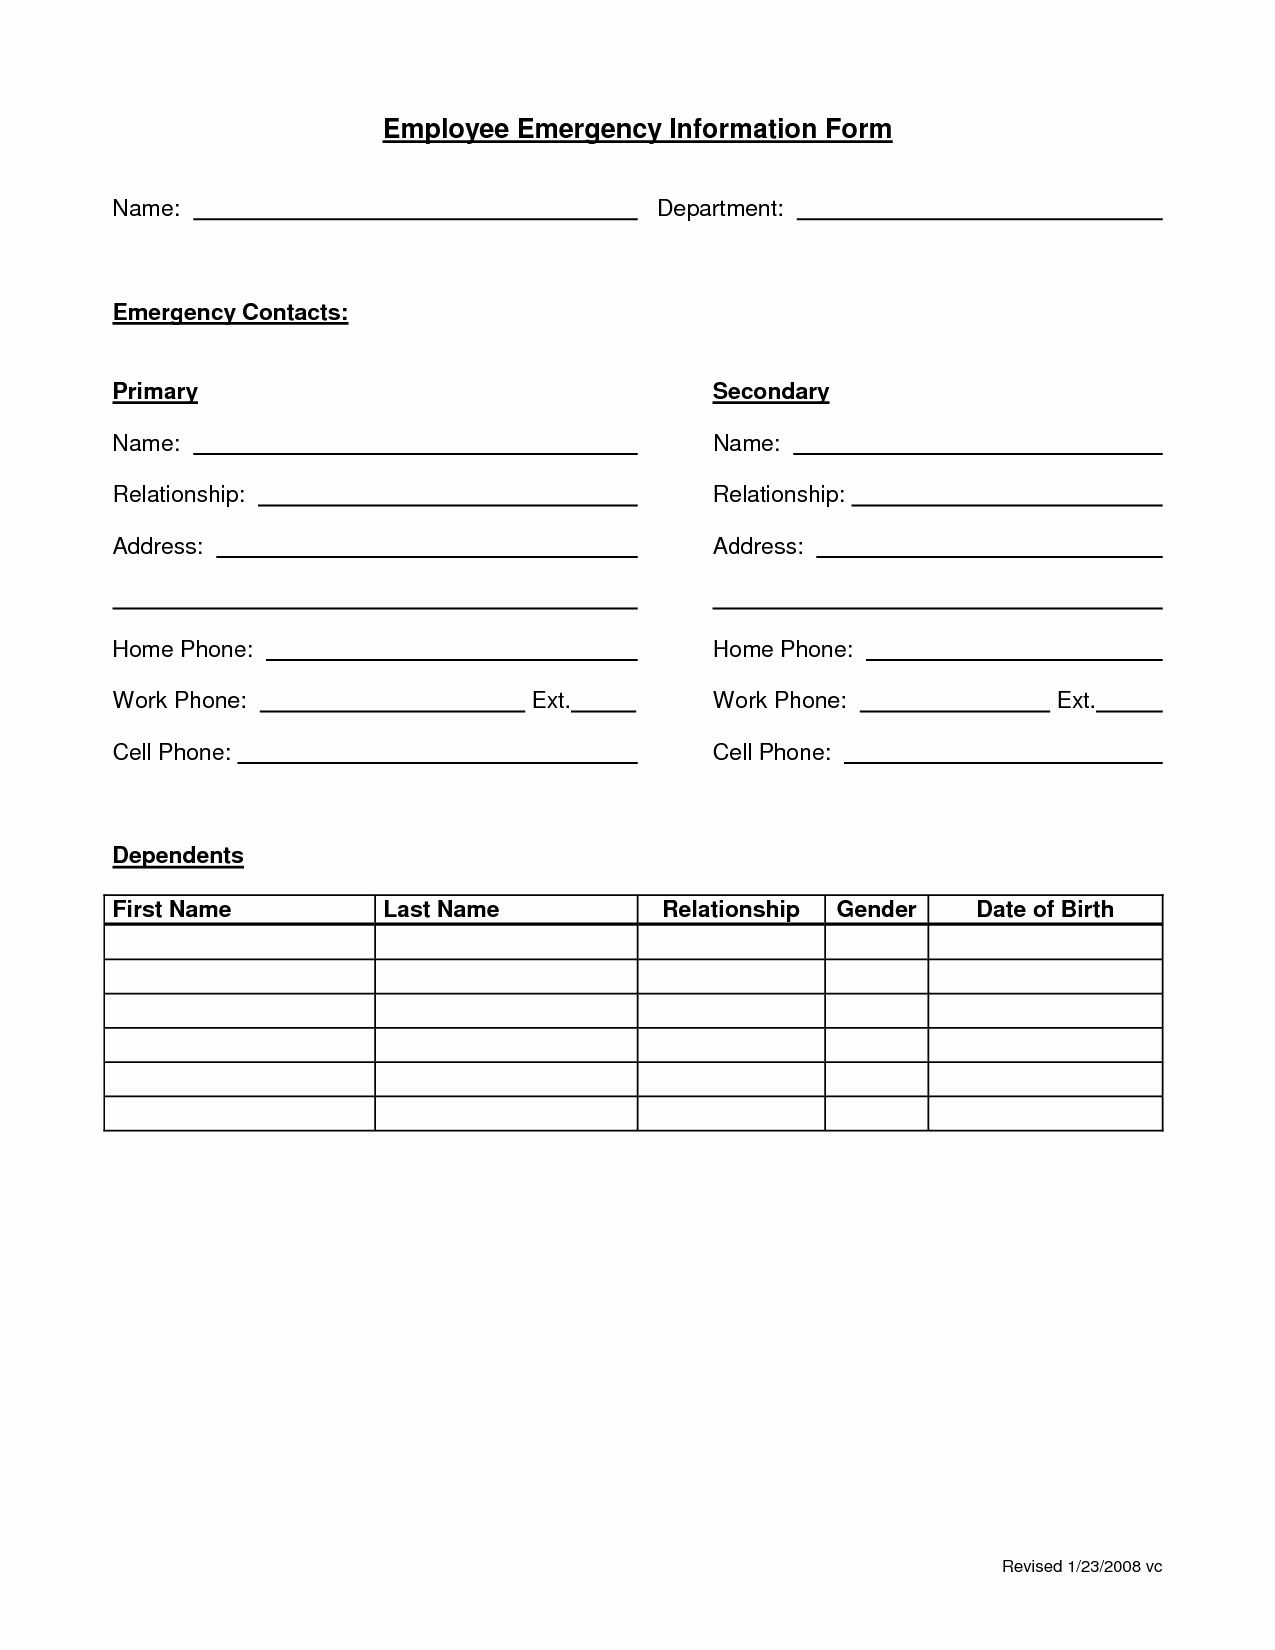 Employee Information Form Template In